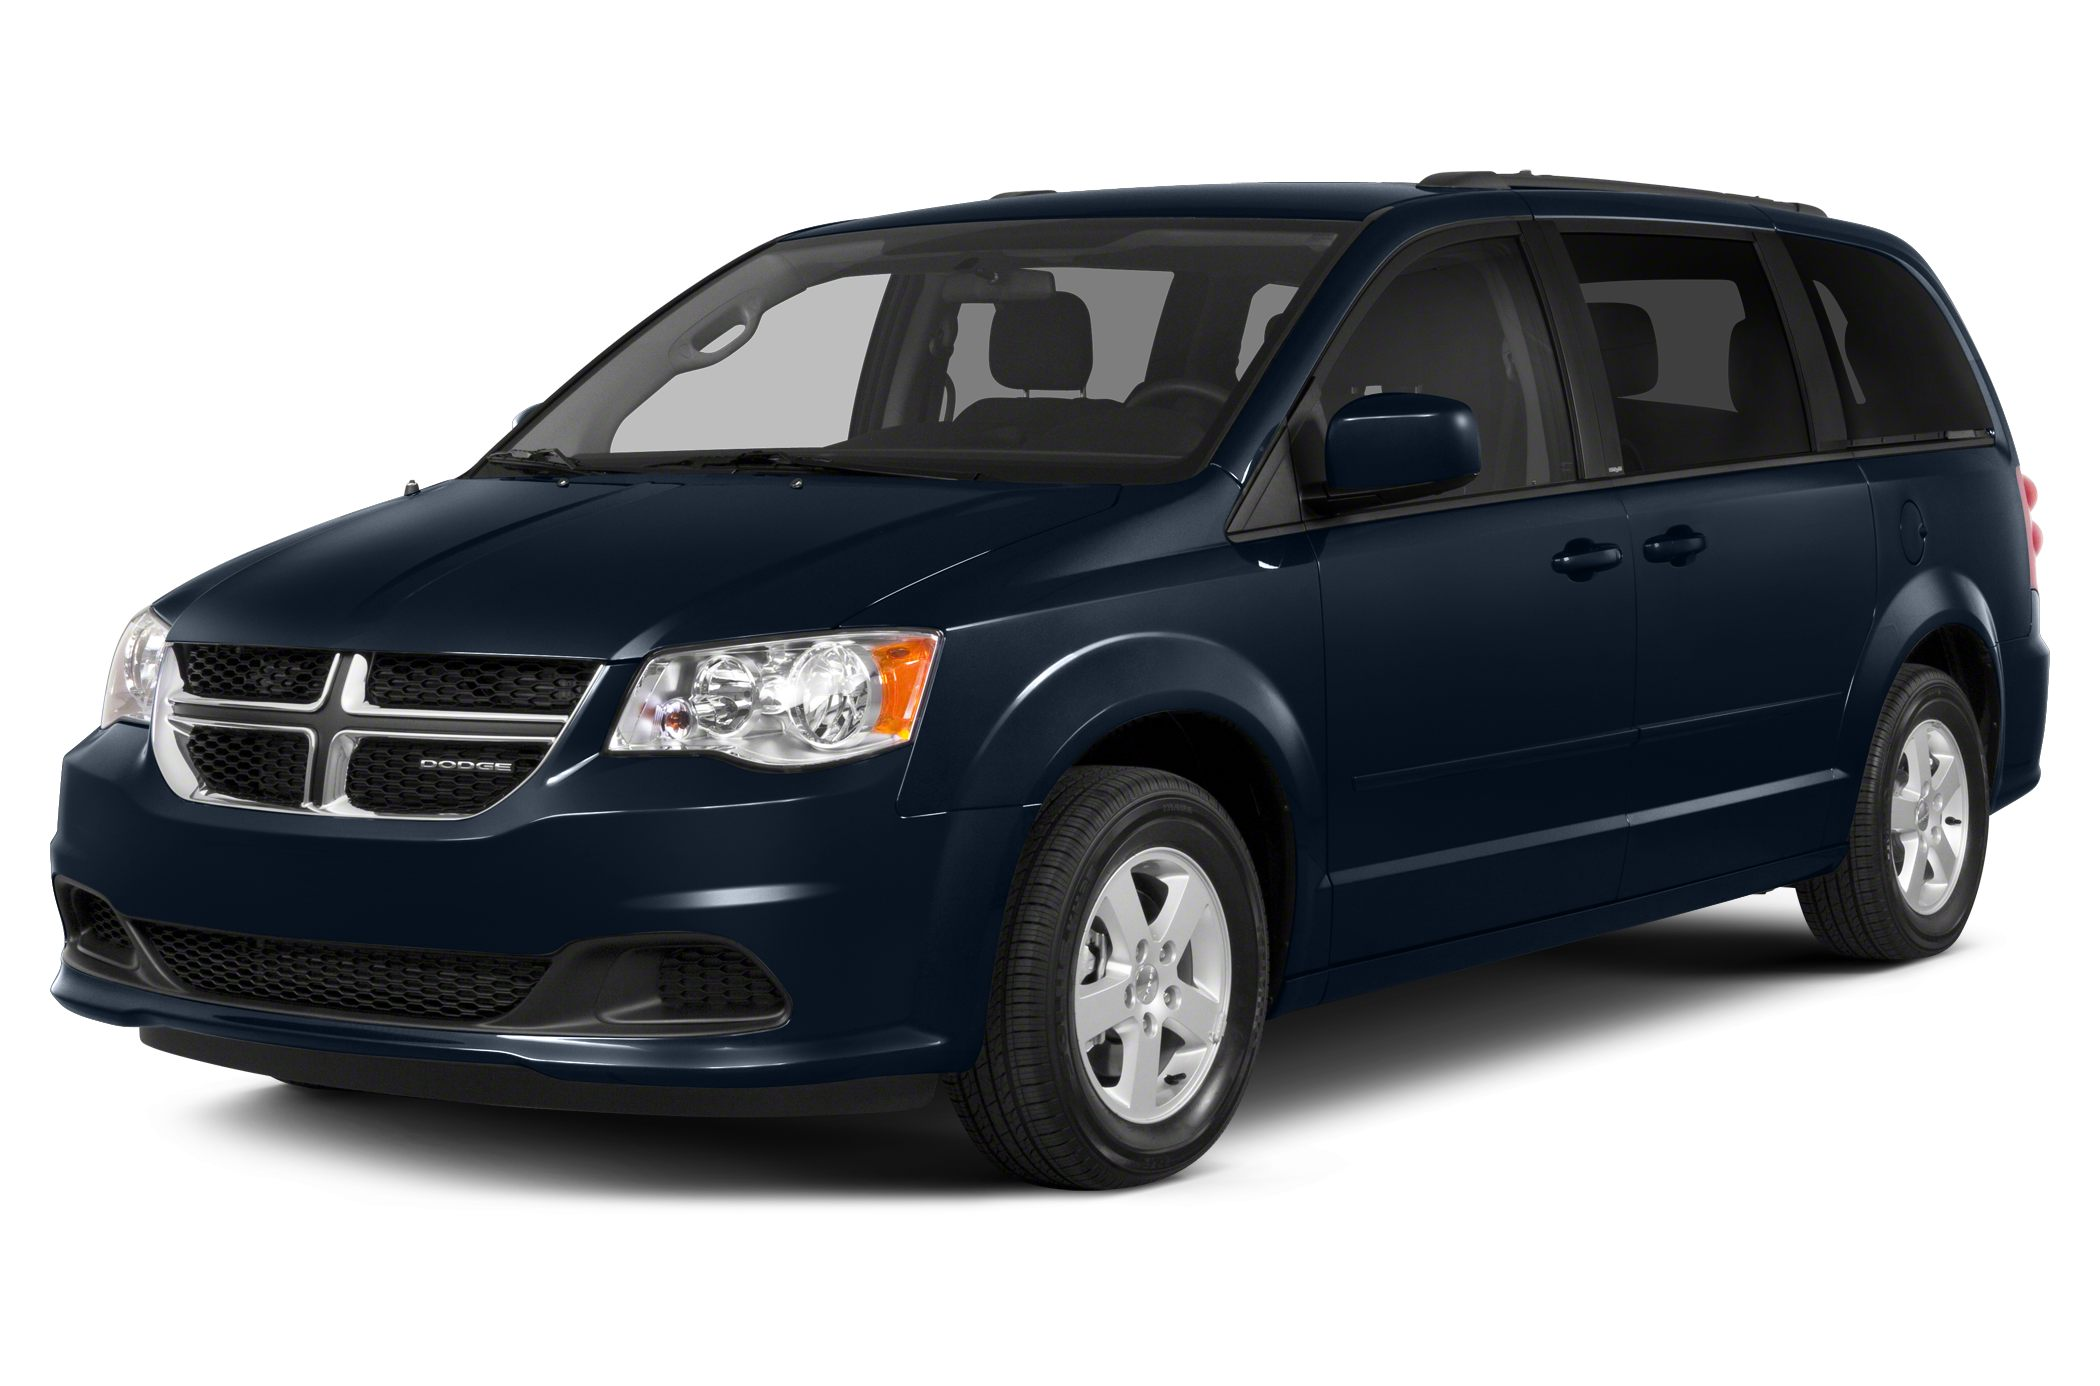 2015 Dodge Grand Caravan SXT Minivan for sale in Milwaukee for $28,640 with 10 miles.